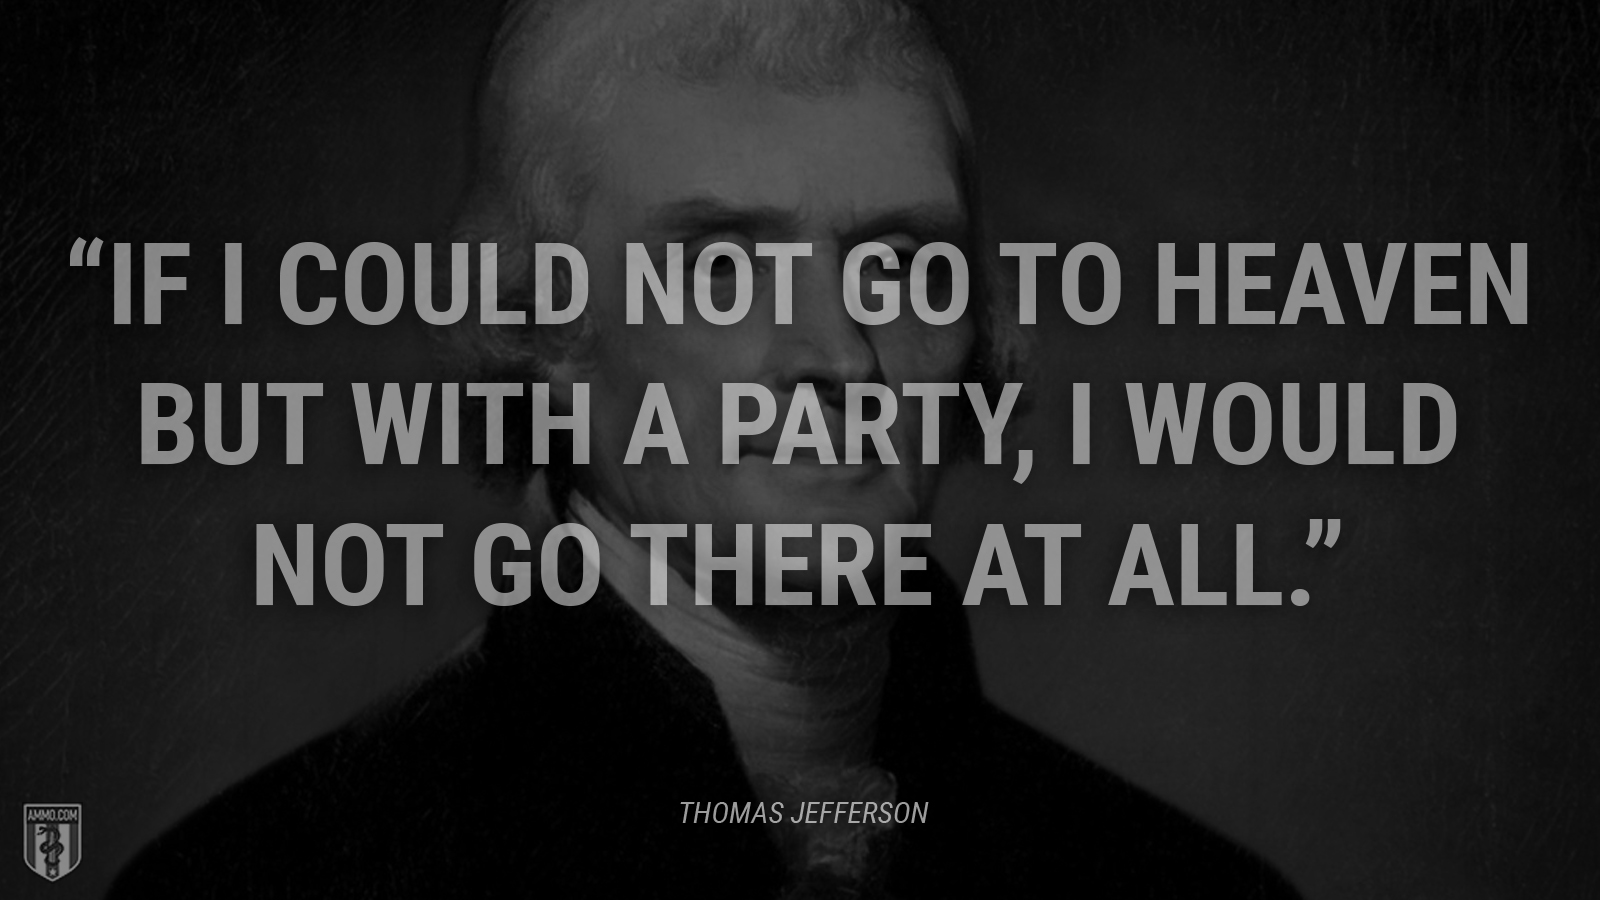 """If I could not go to heaven but with a party, I would not go there at all."" - Thomas Jefferson"